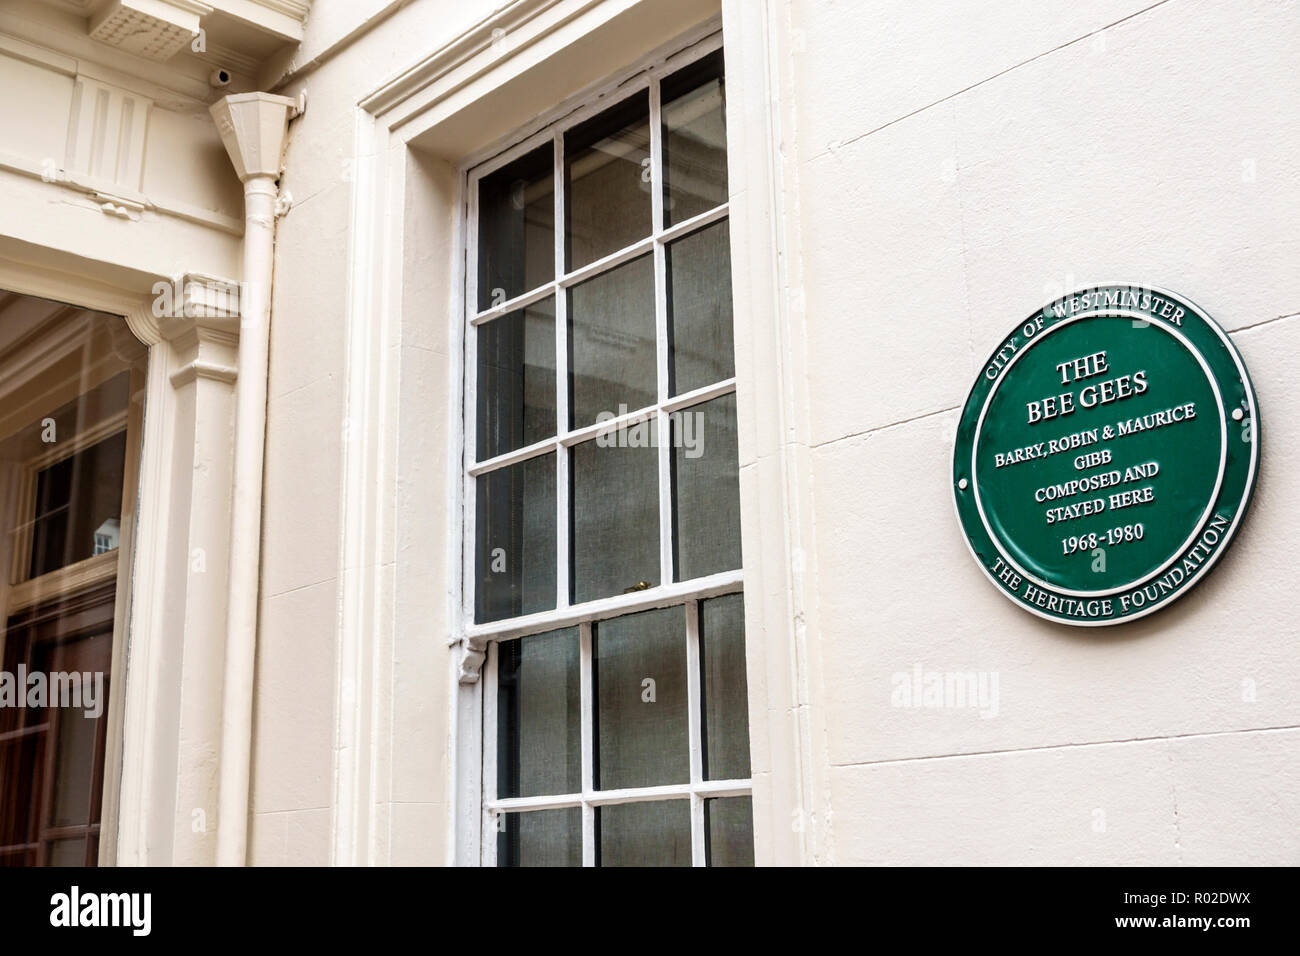 London England United Kingdom Great Britain Mayfair Brook Street City of Westminster Heritage Foundation historical marker plaque Bee Gees Barry Robin - Stock Image